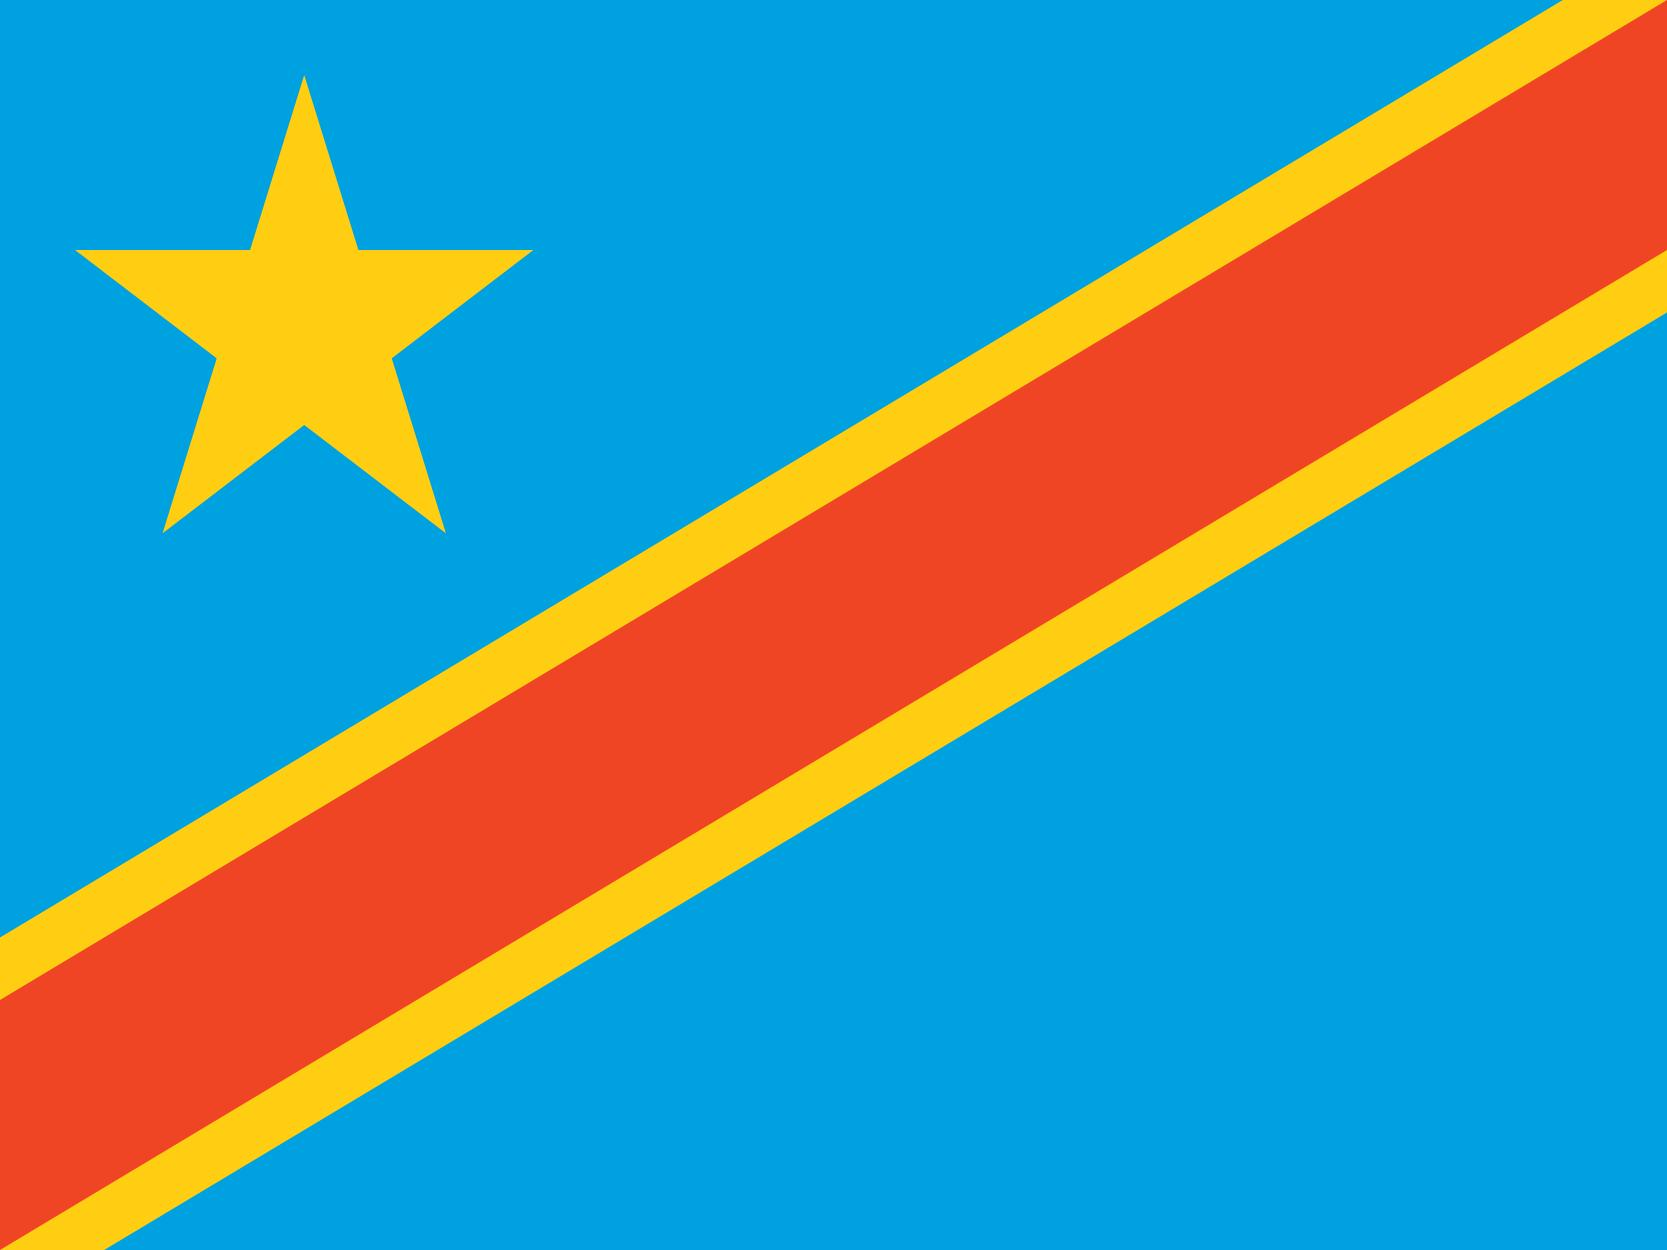 Democratic Republic of the Congo Flag and Emblem Vector EPS Free Download, Logo, Icons, Brand Em ...